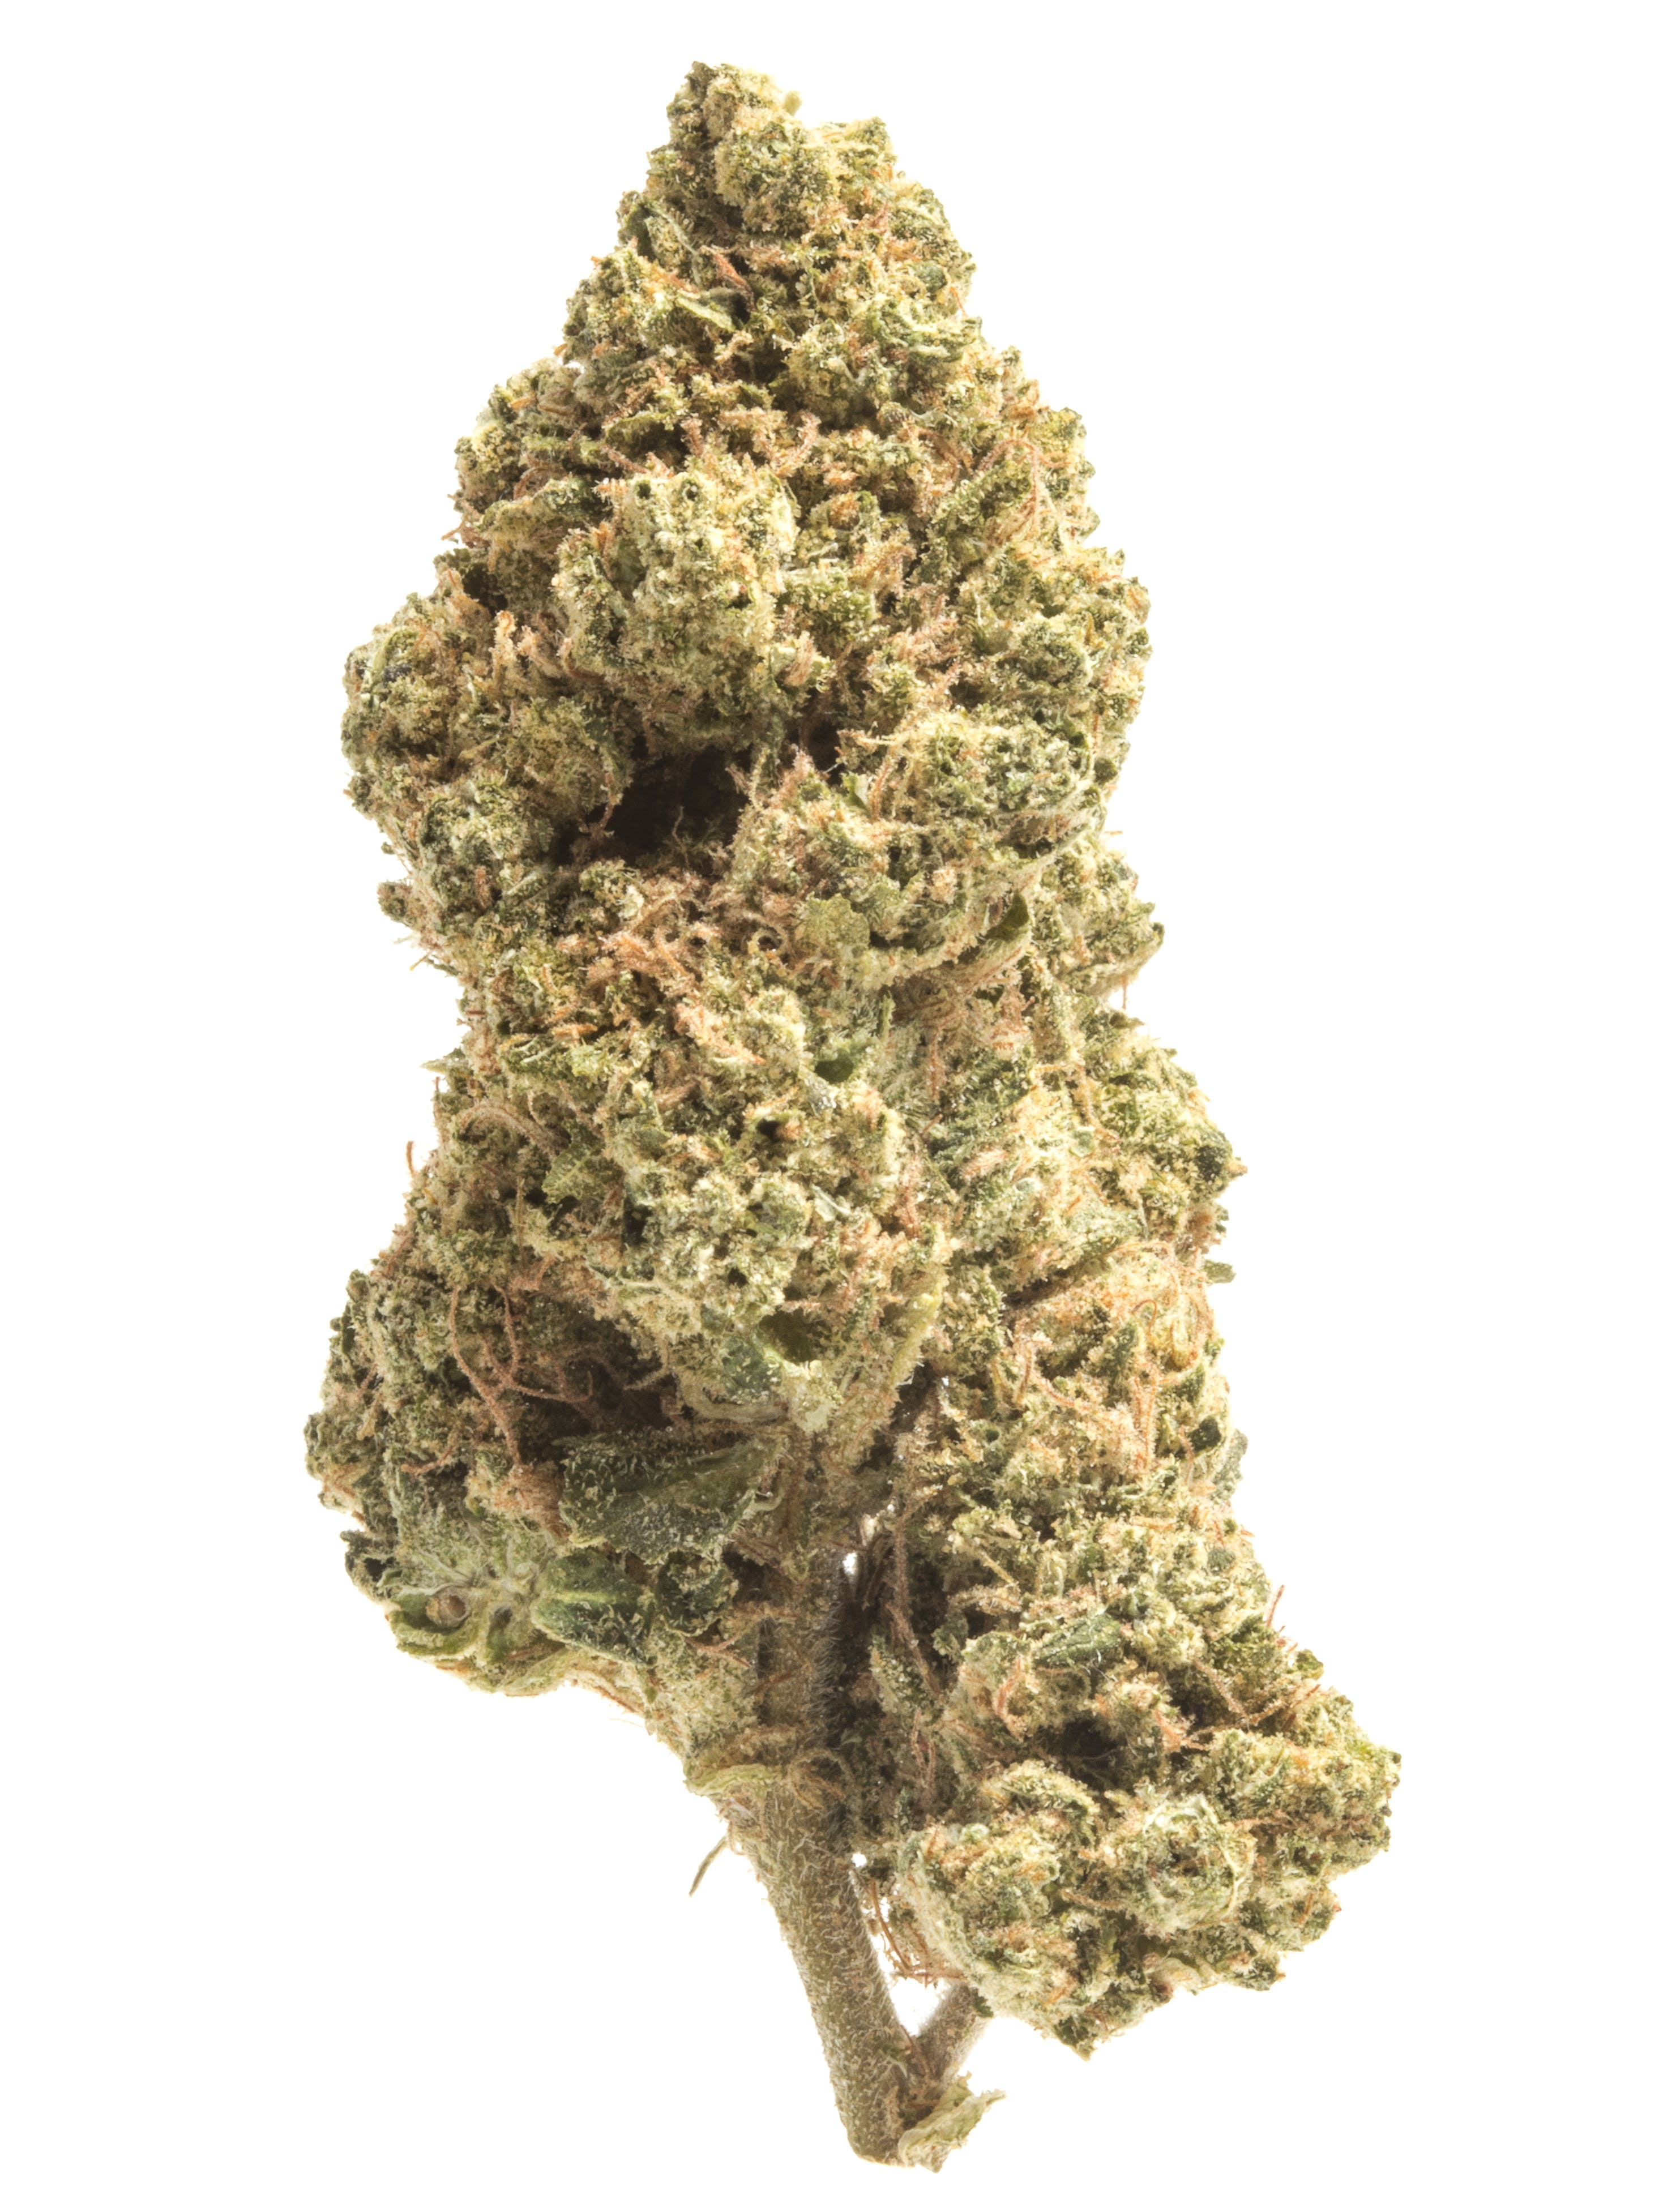 Lemon Kush Strain Review